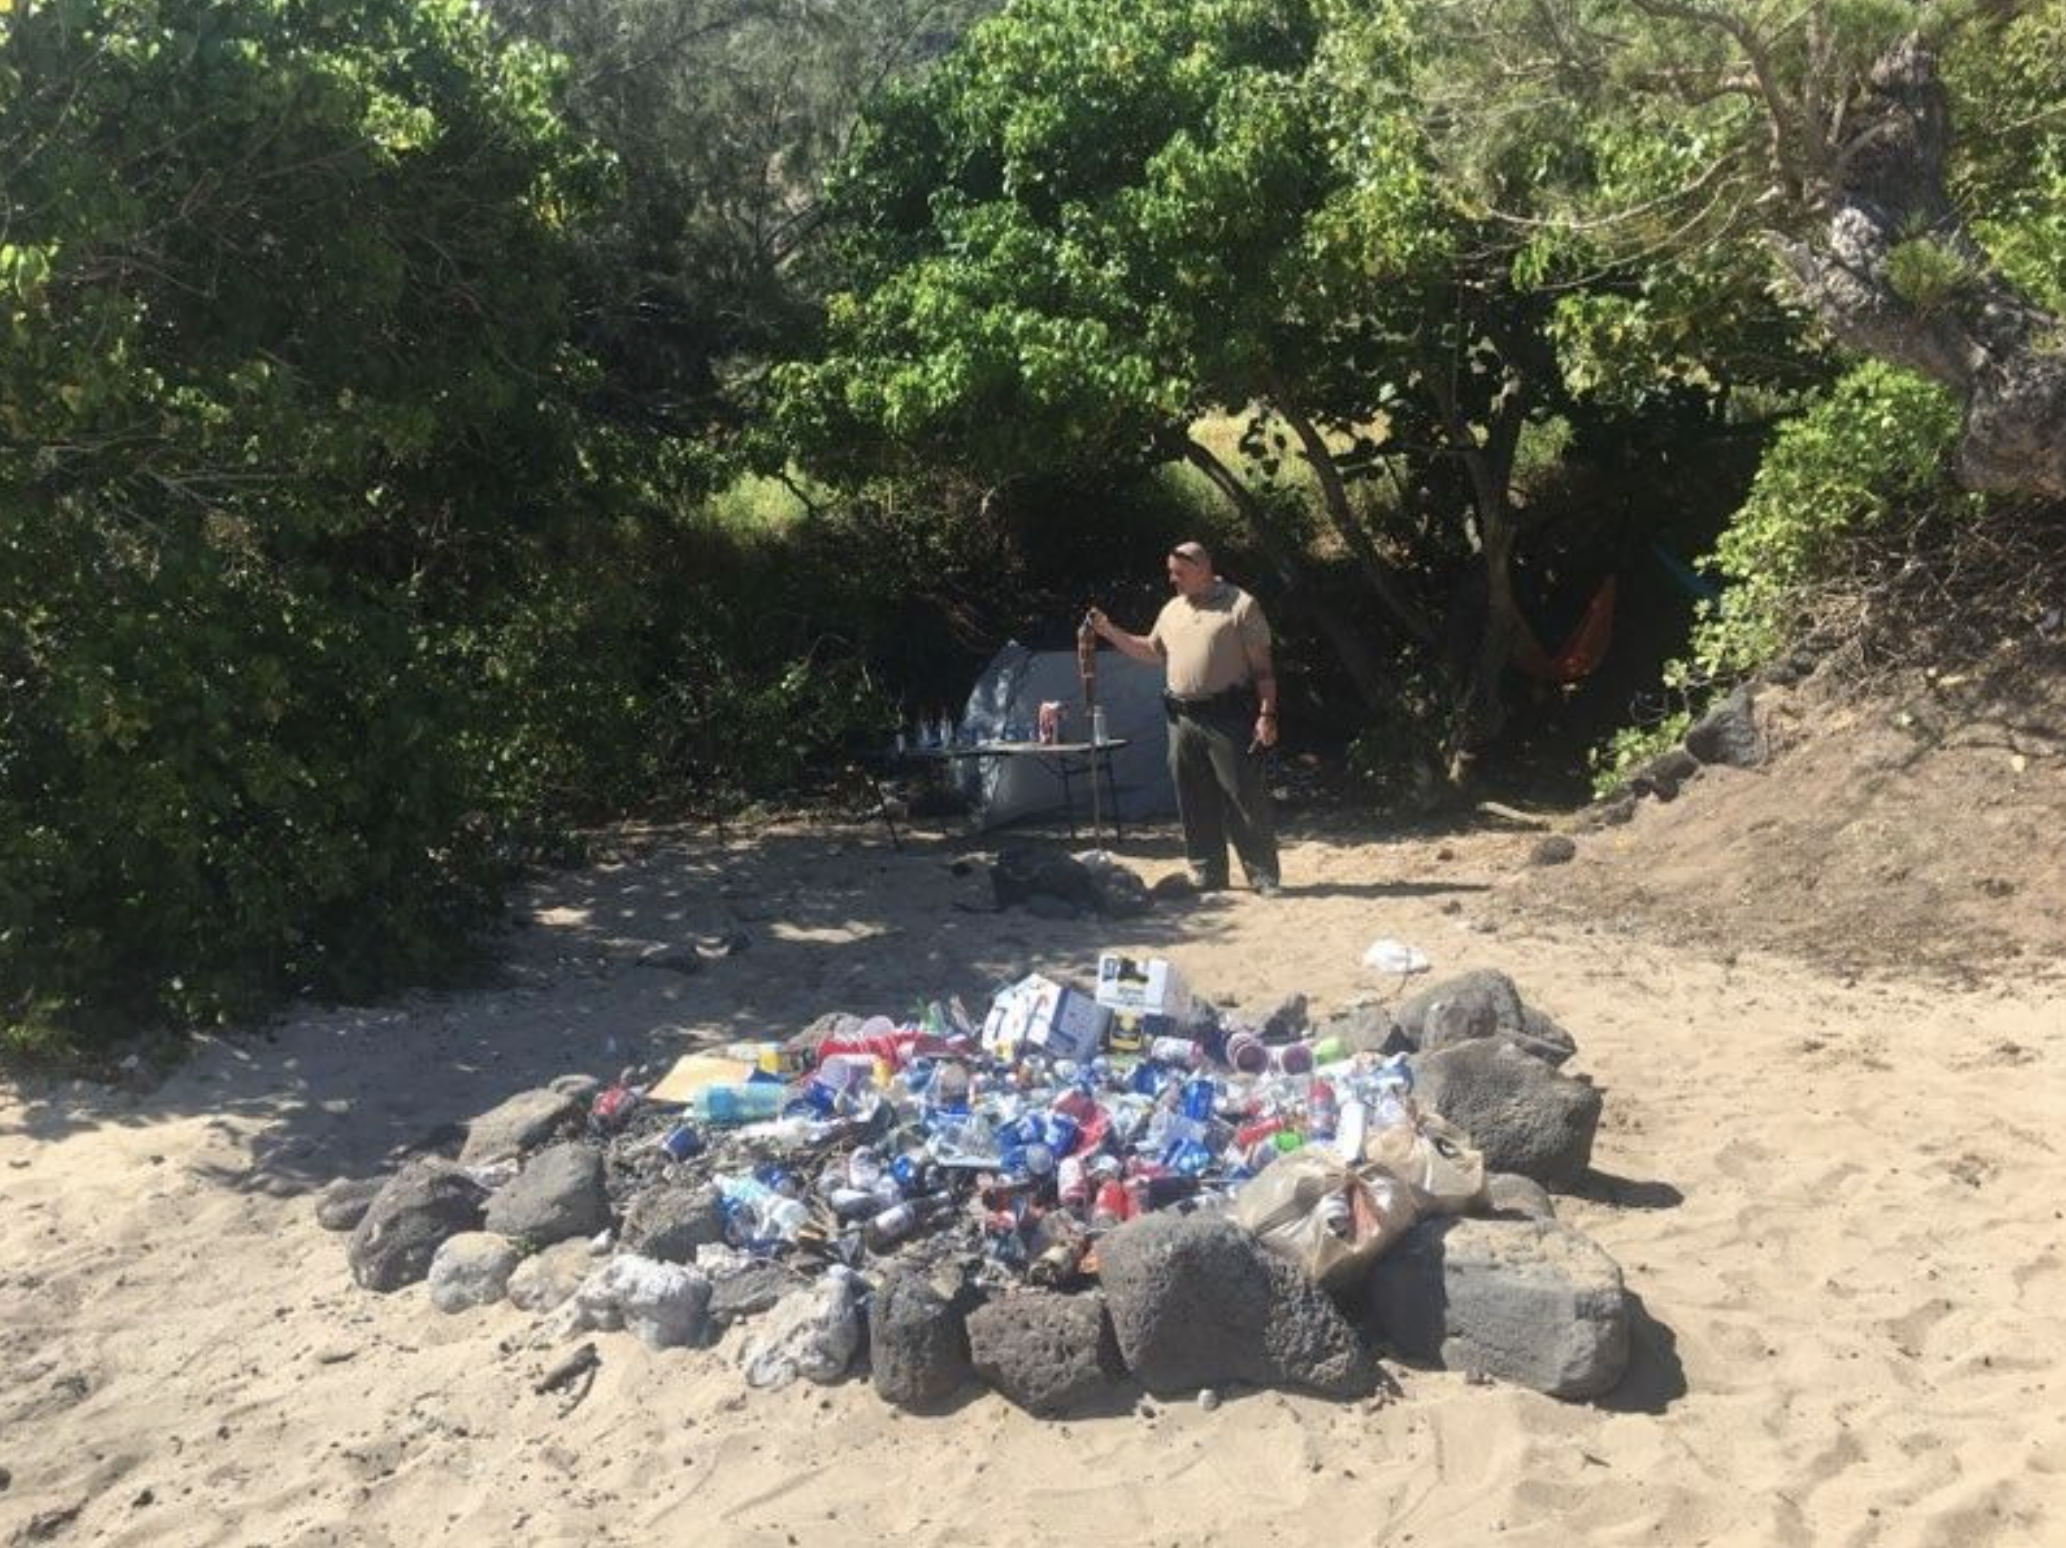 Large Beach Party Broken Up by Law Enforcement at Ka'ena Point State Park, North Shore O'ahu